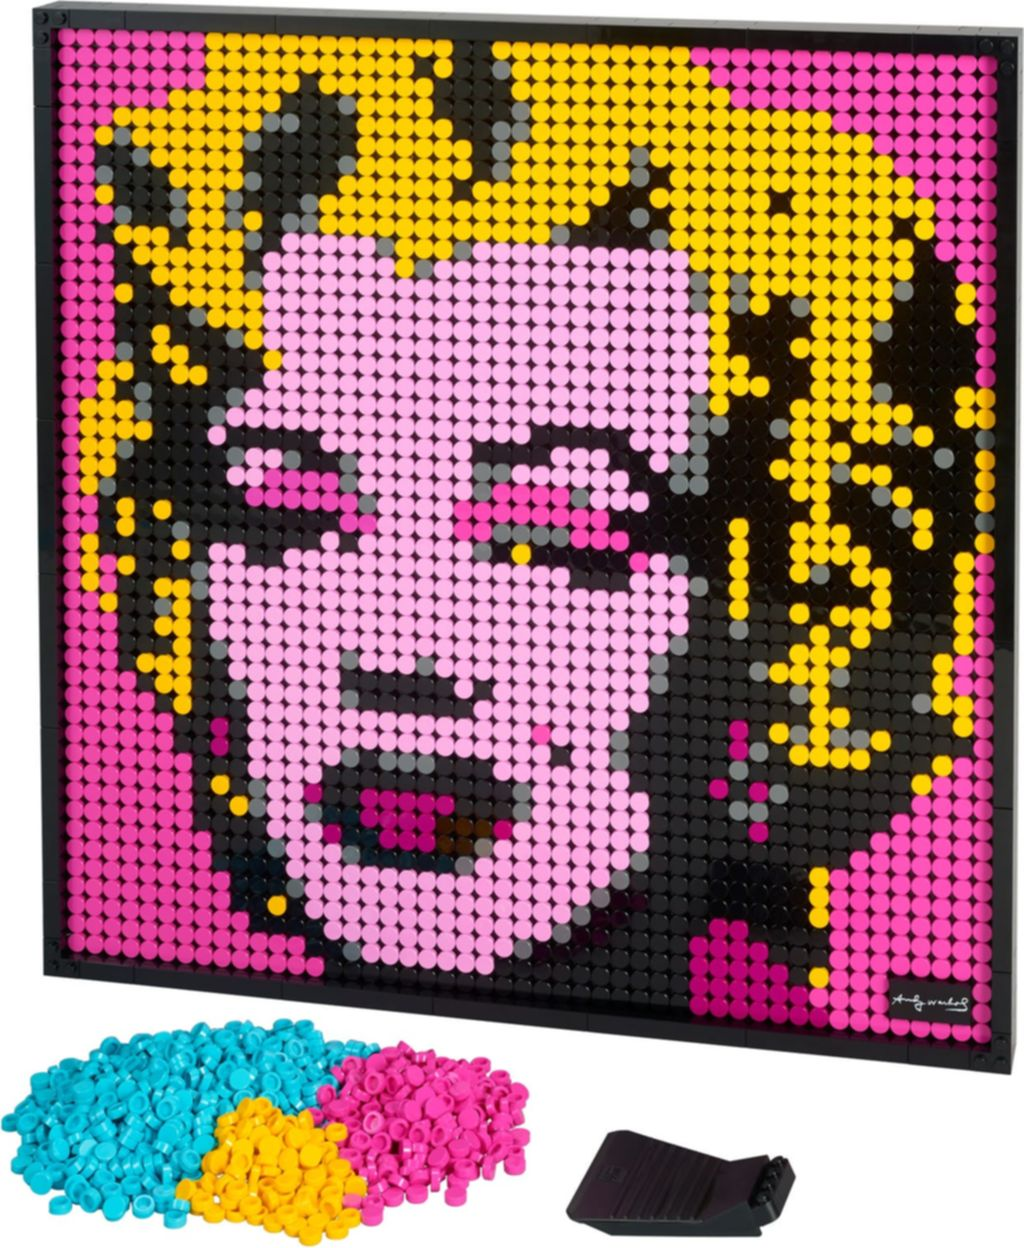 Andy Warhol's Marilyn Monroe components